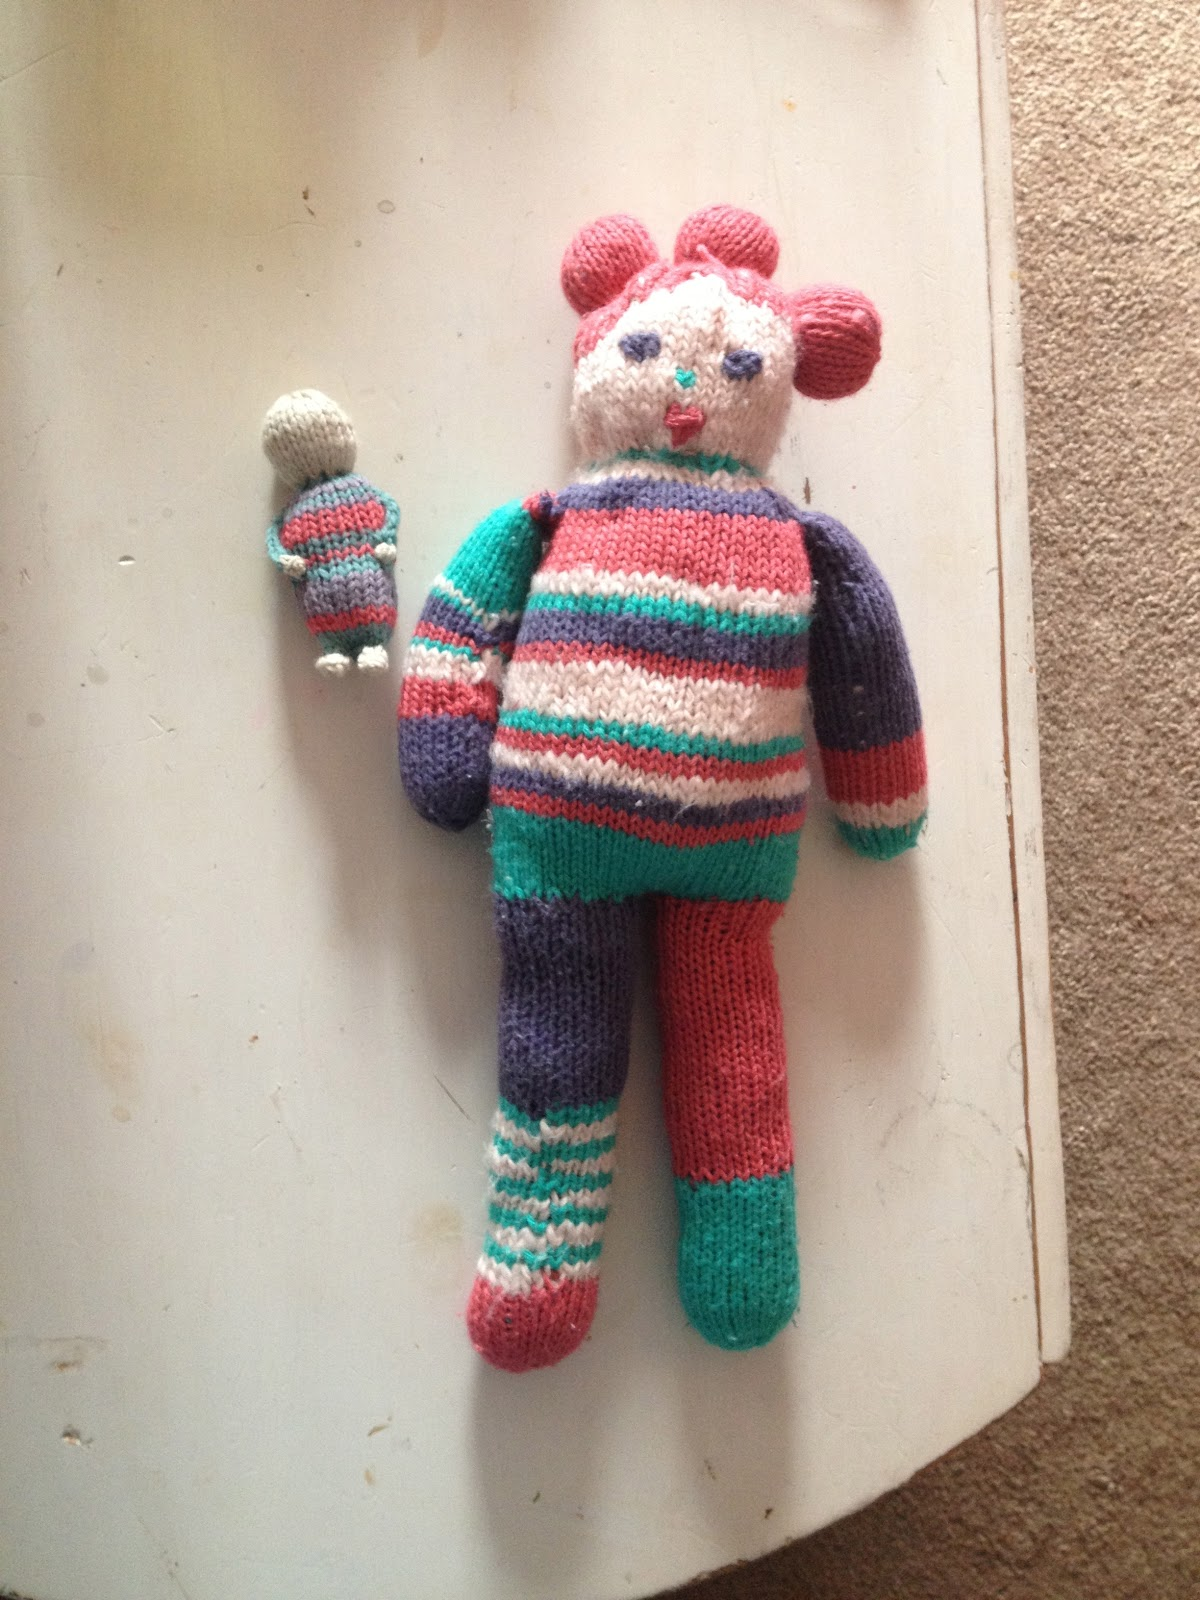 Knitting Pattern For Long Legged Doll : Tiptoethrough: What Ive Been Knitting: A little baby doll